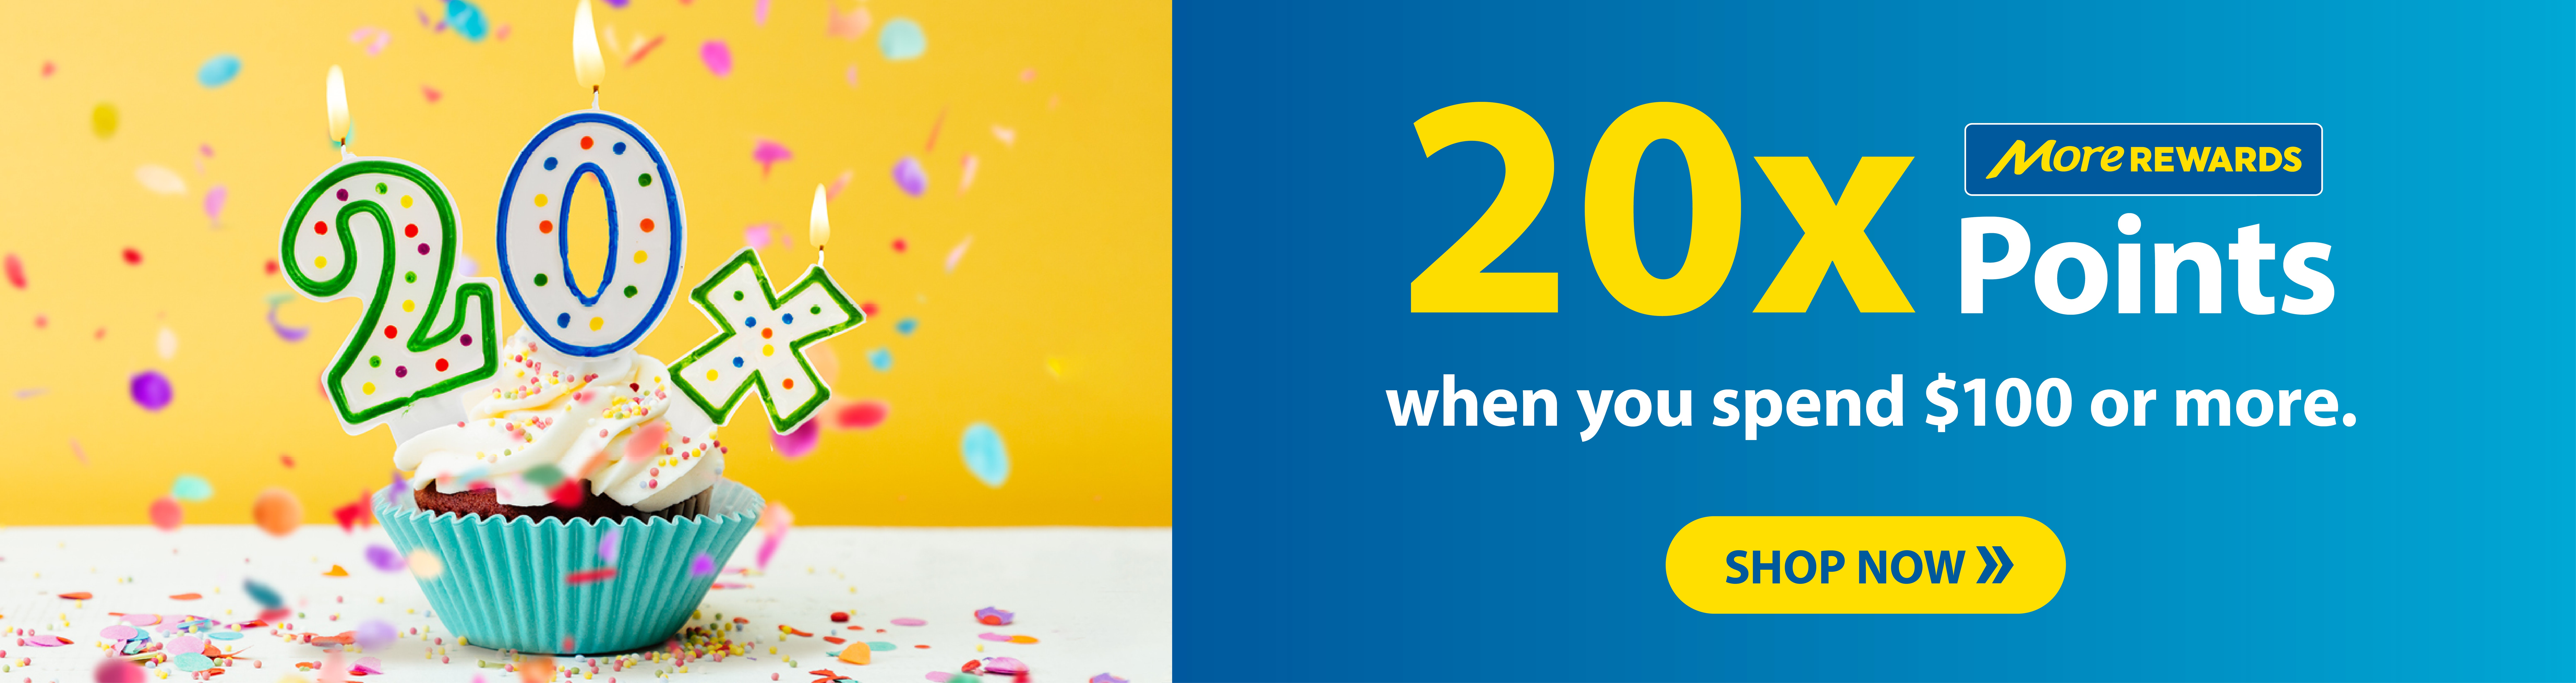 20x More Rewards Points when you spend $100 or more. Shop Now.